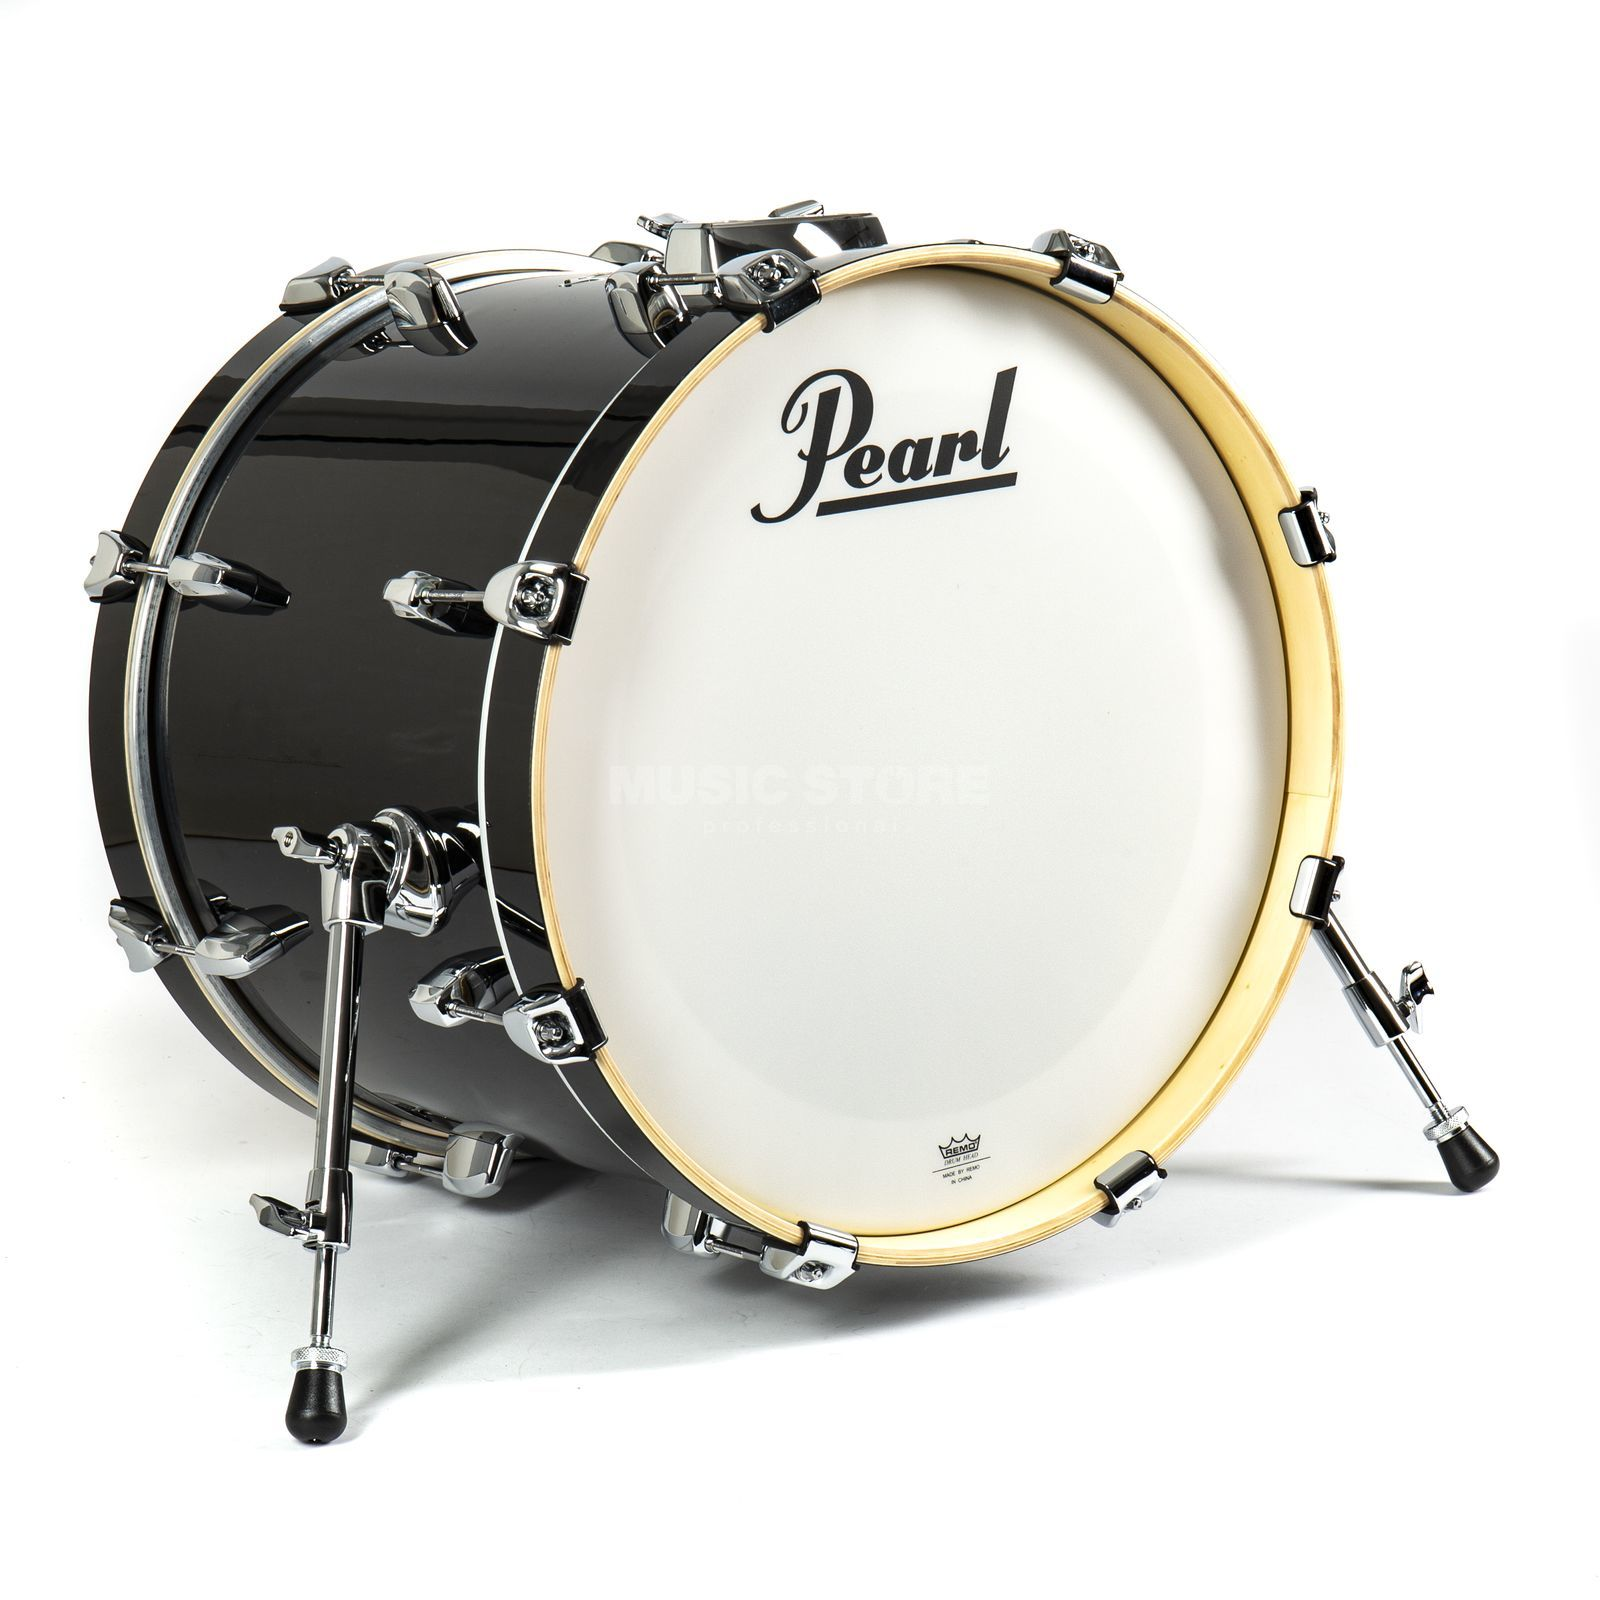 "Pearl Export EXX BassDrum 20""x18"", Jet Black #31 Product Image"